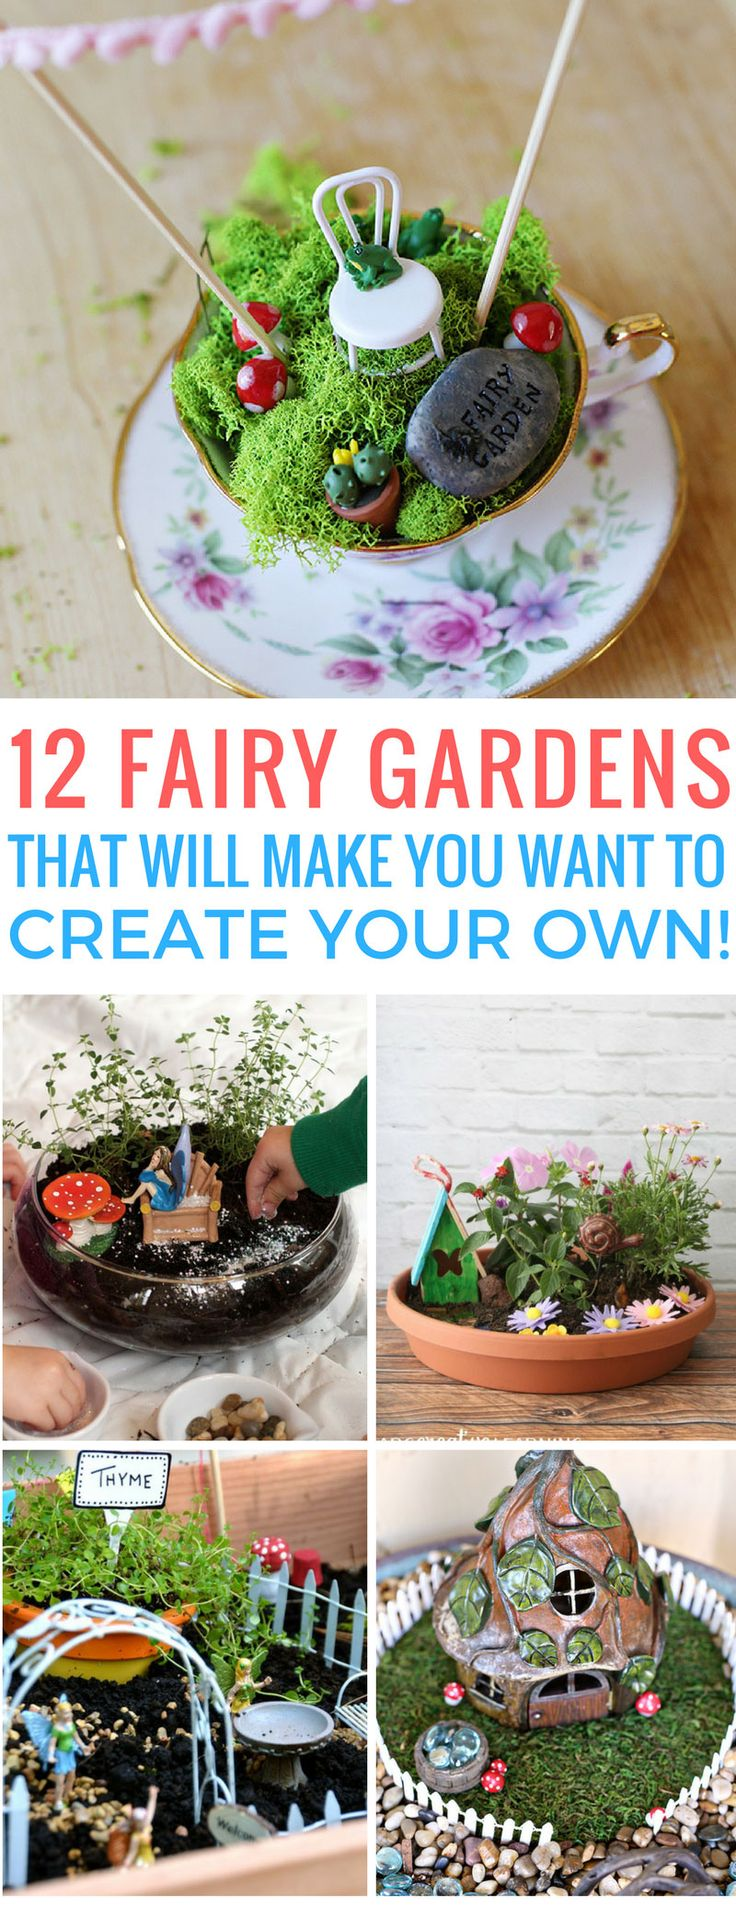 Totally inspired by these wonderful fairy gardens we're going to make one! Thanks for sharing!